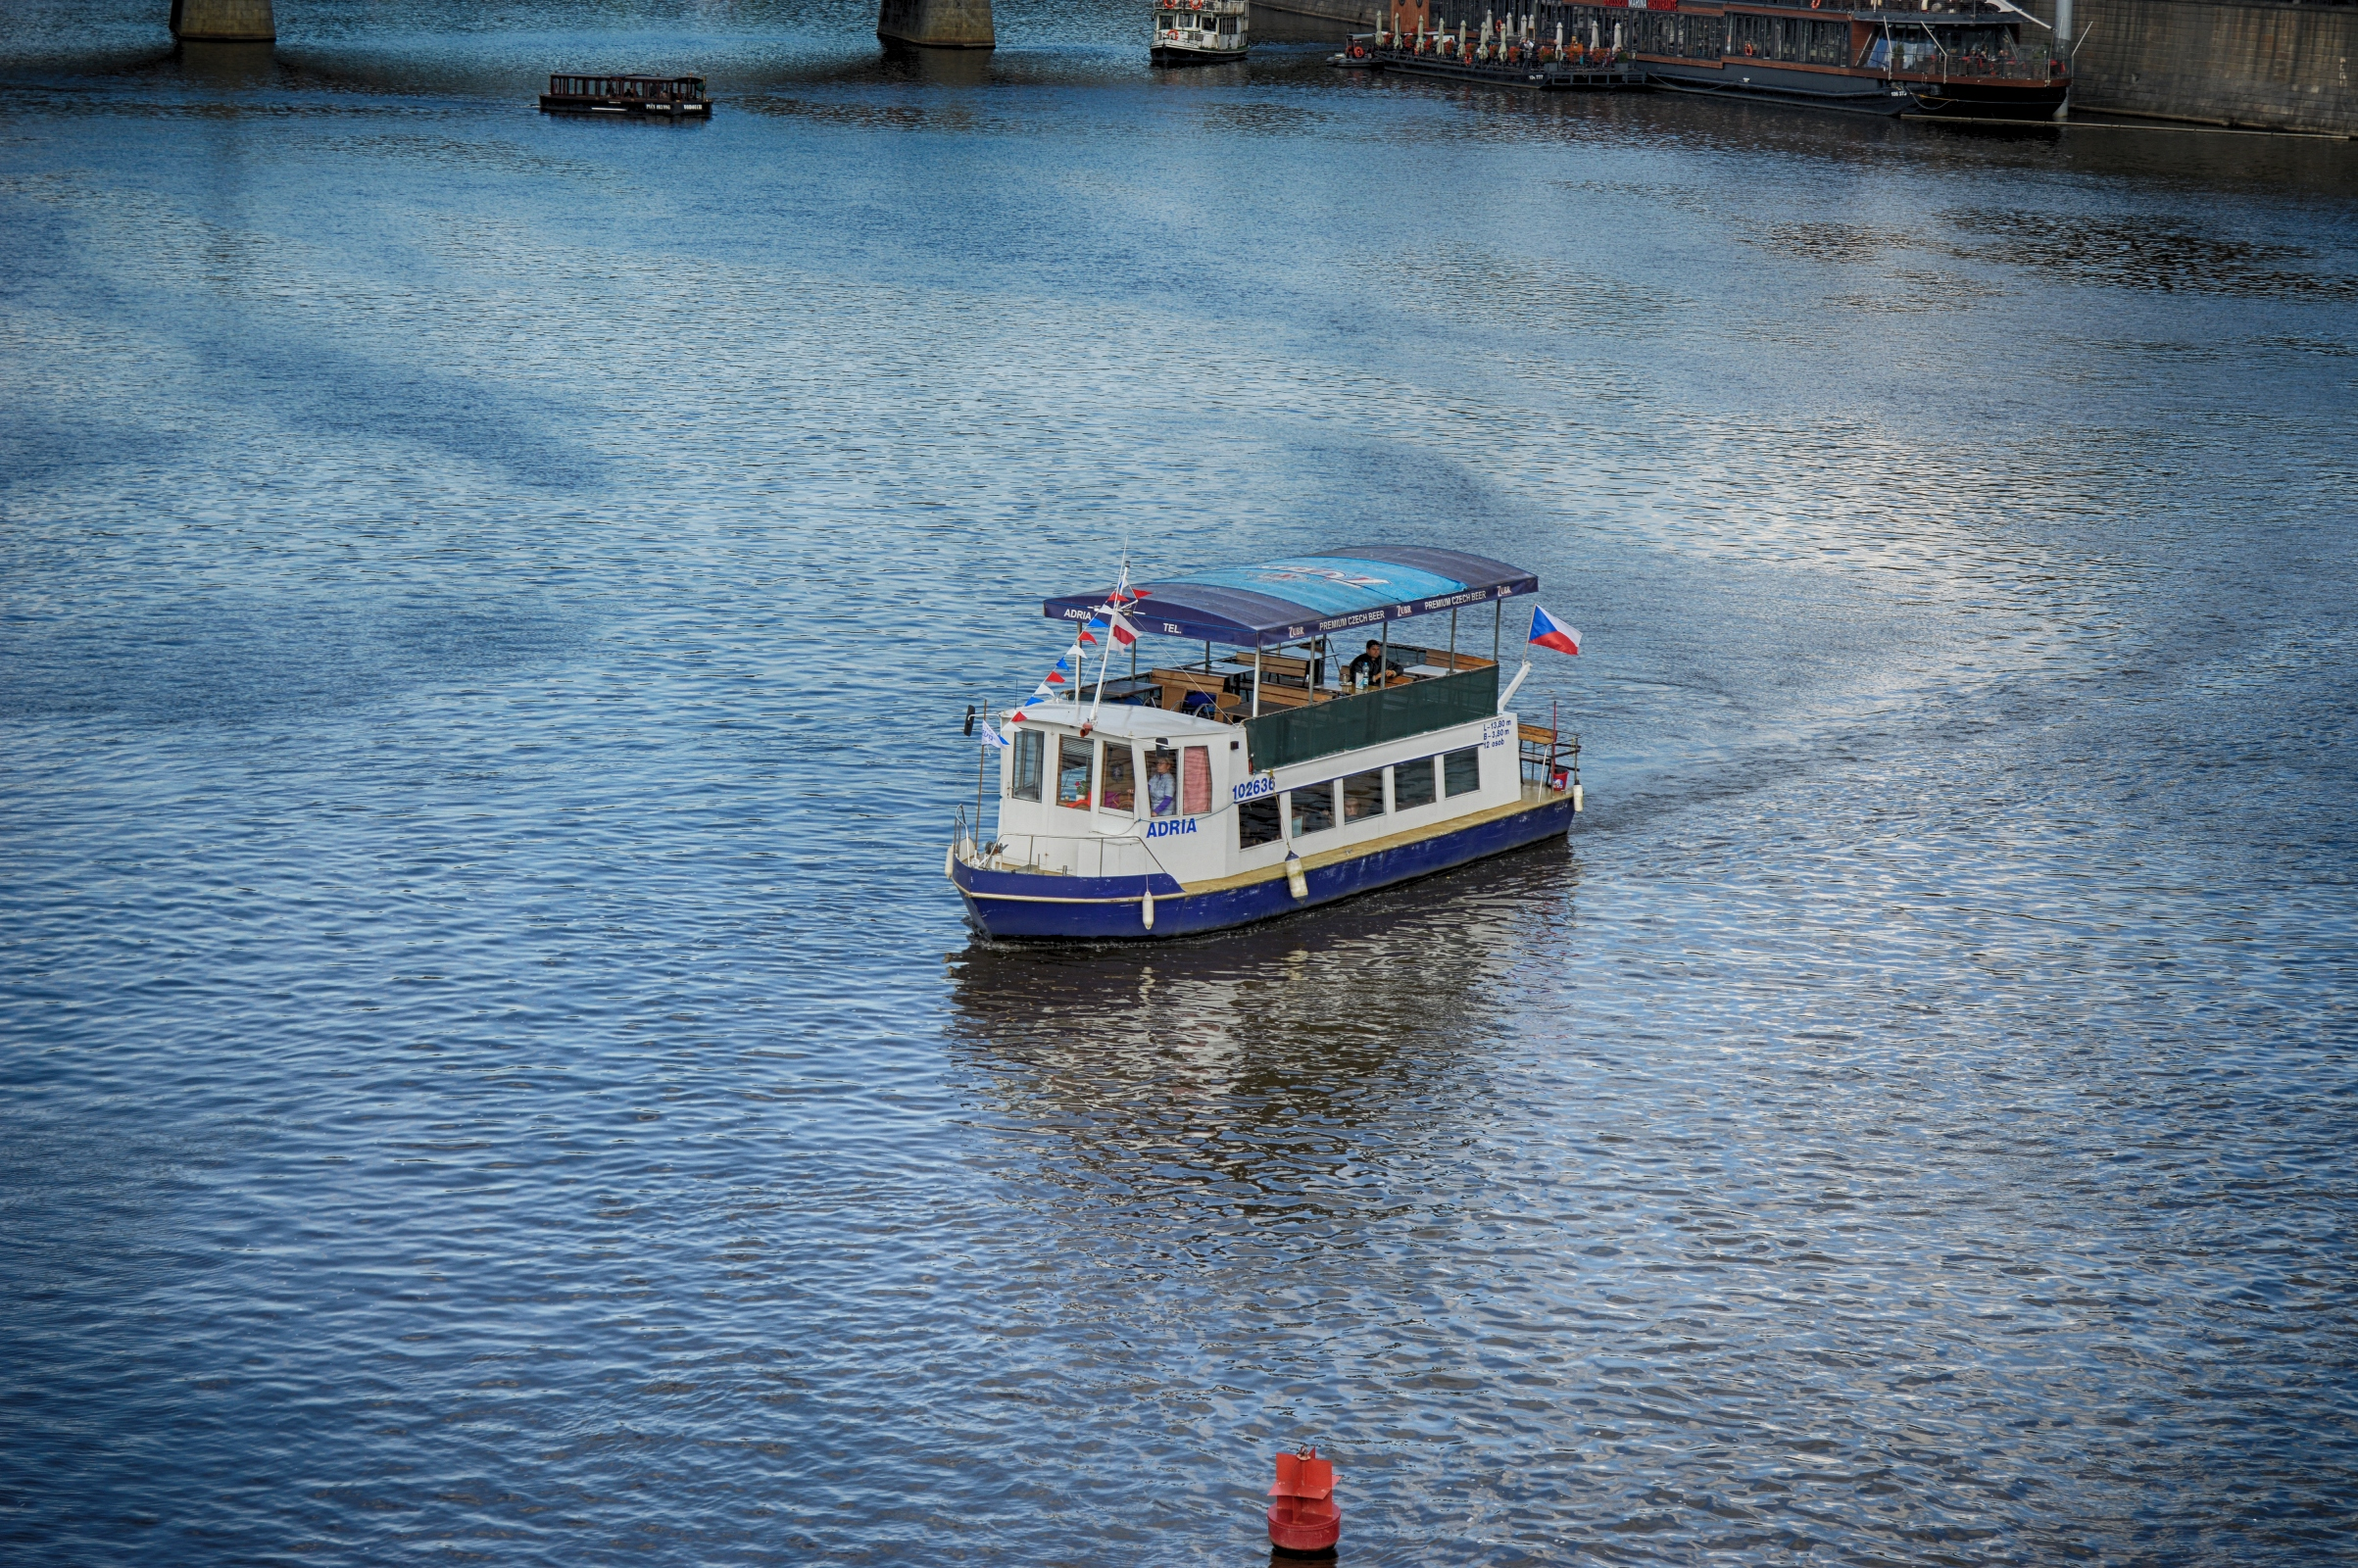 Passenger boat in prague photo